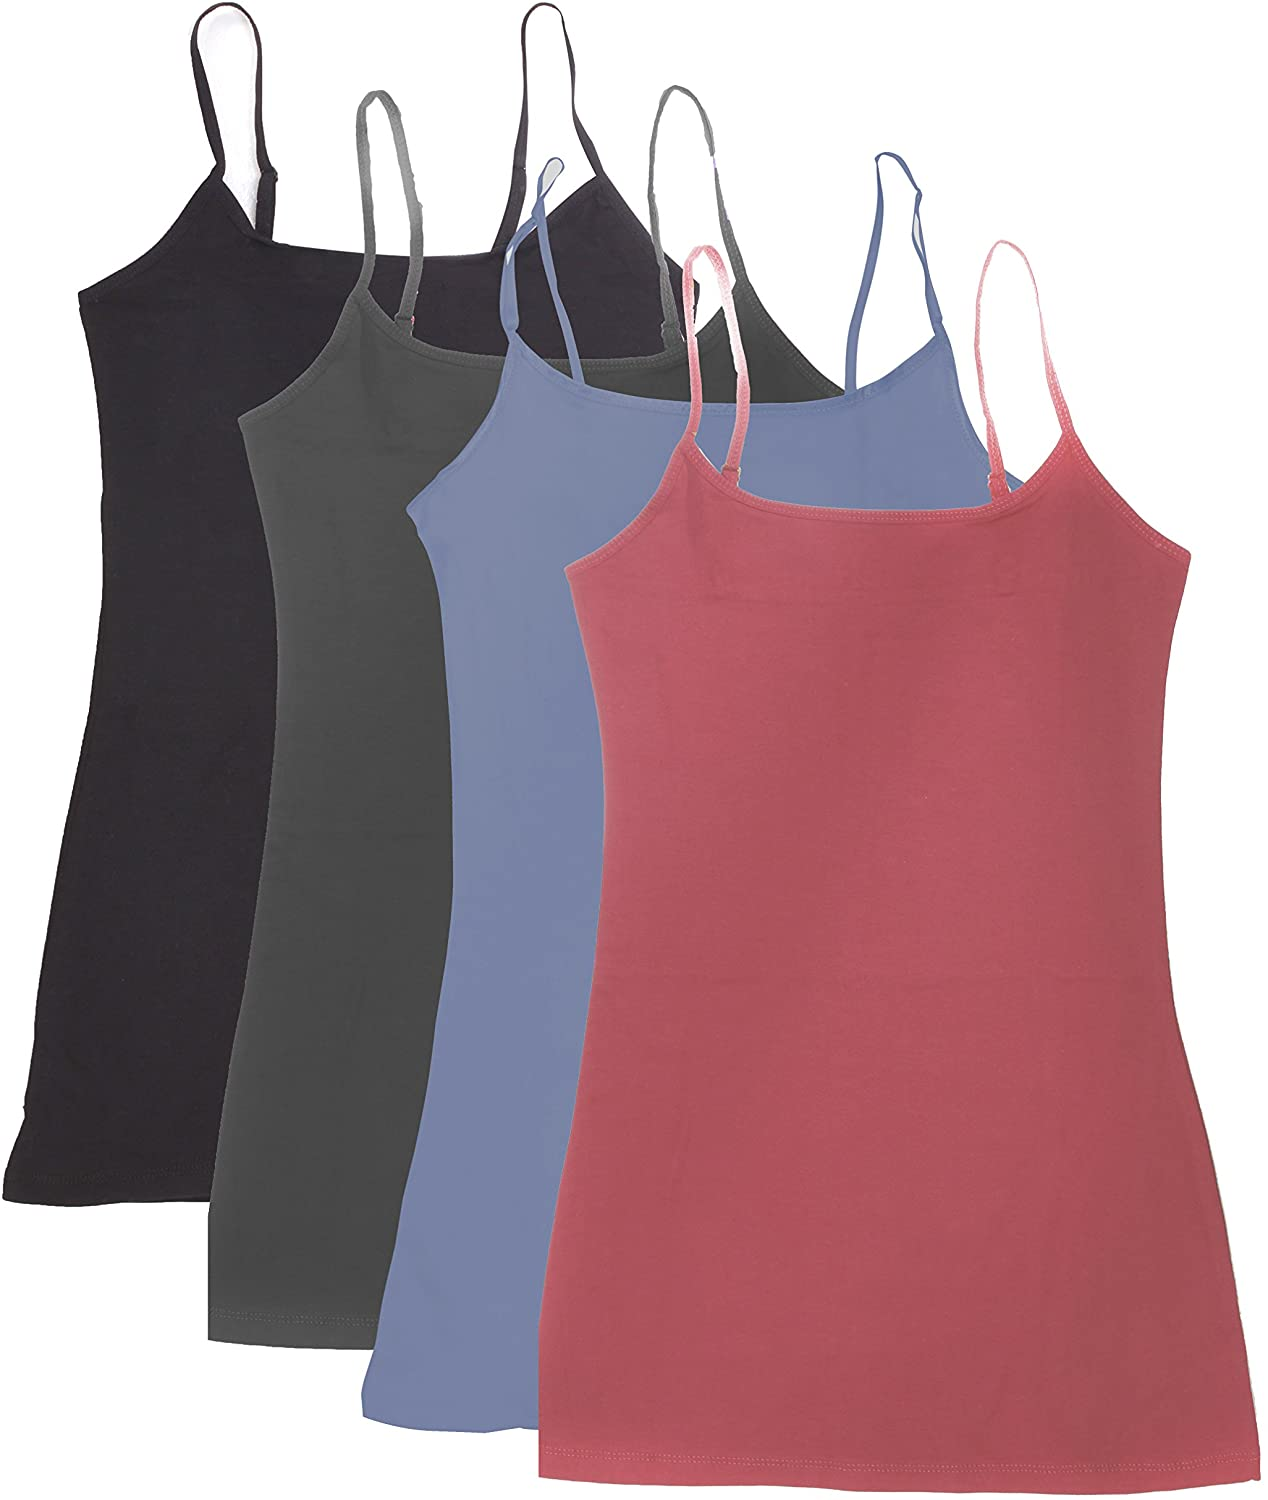 4 Pack Active Basic Women's Basic Tank Top (M-Dst Rs/Dnm Blu/Chcl/Bk)